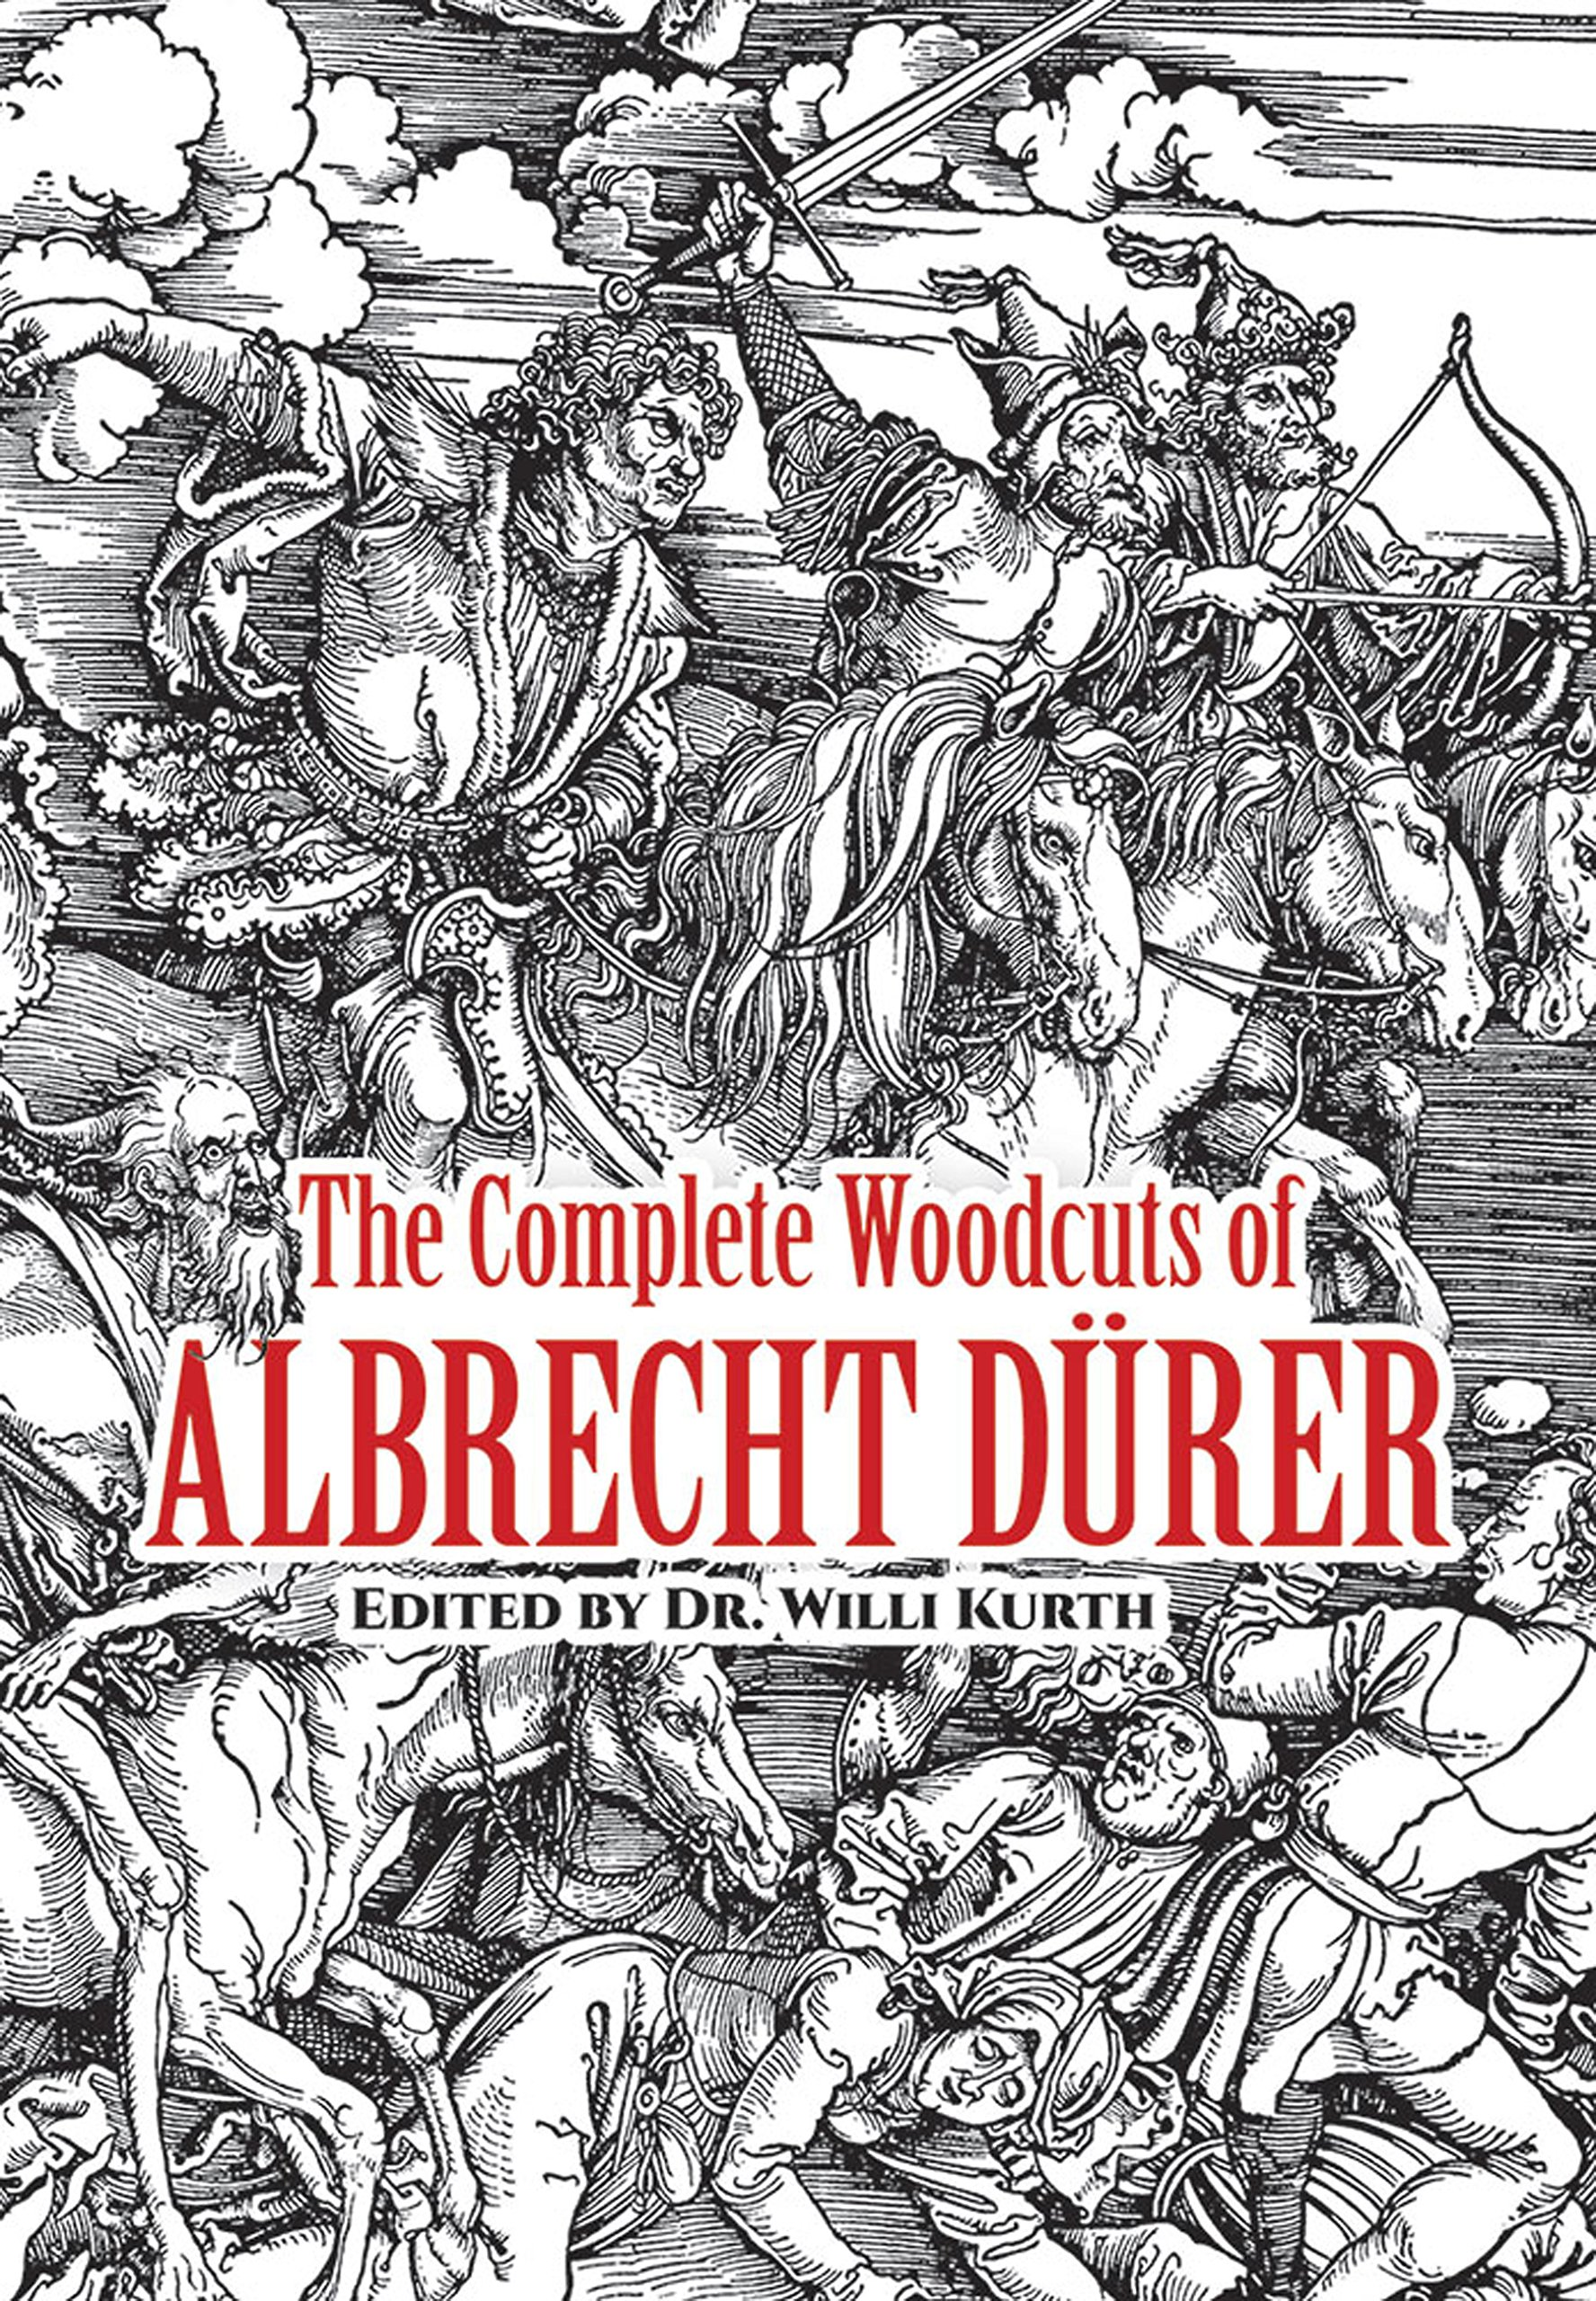 The Complete Woodcuts of Albrecht Dürer (Dover Fine Art, History of Art) by Dover Publications (Image #1)